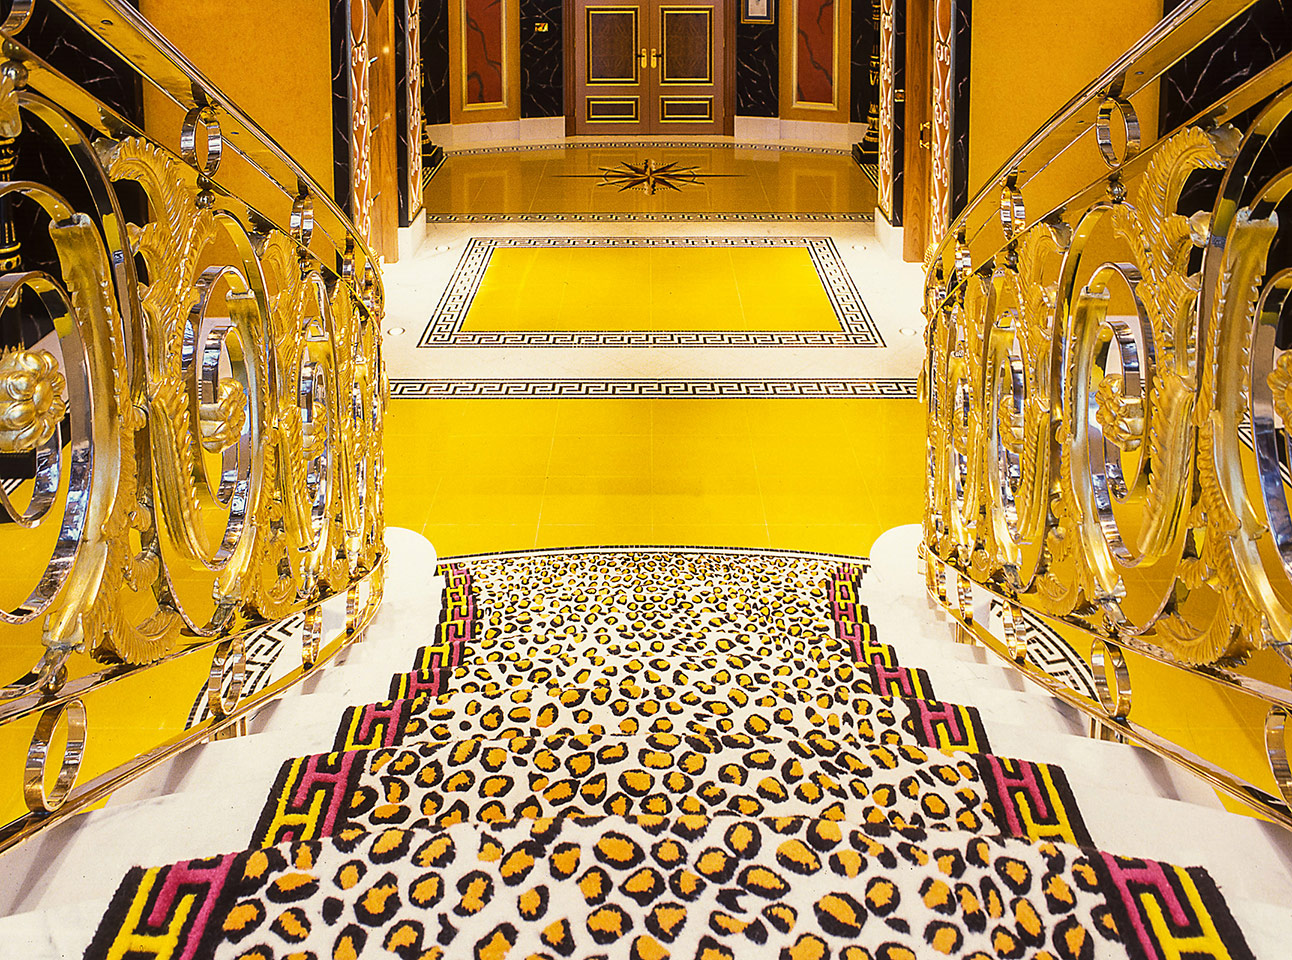 Burj al arab architecture interior photography Burj al arab architecture